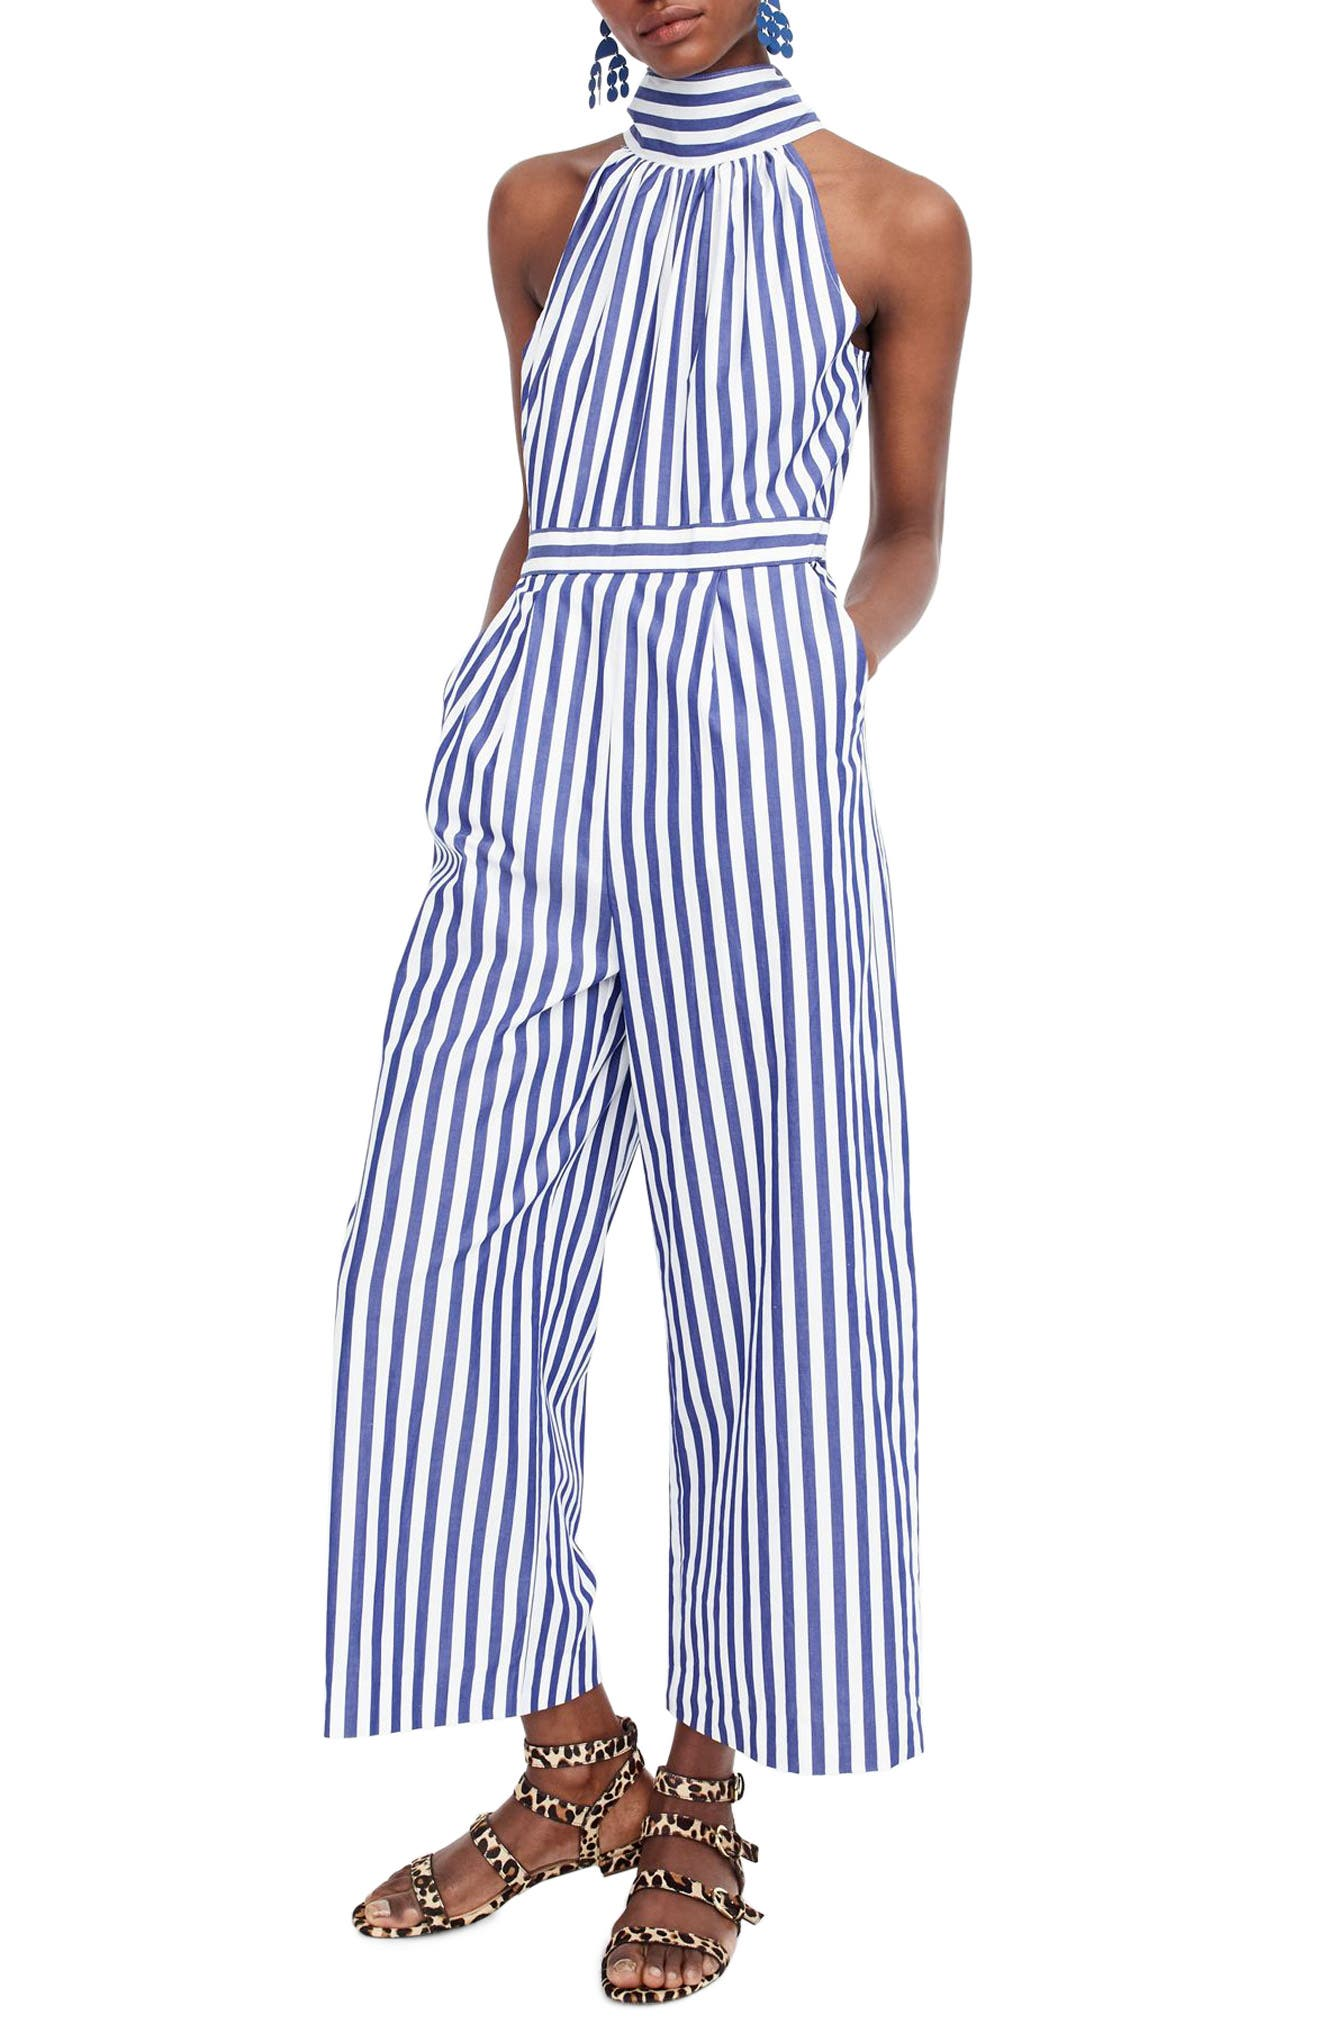 J.Crew Striped Halter Jumpsuit,                         Main,                         color, Tushar Stripe Lighthouse